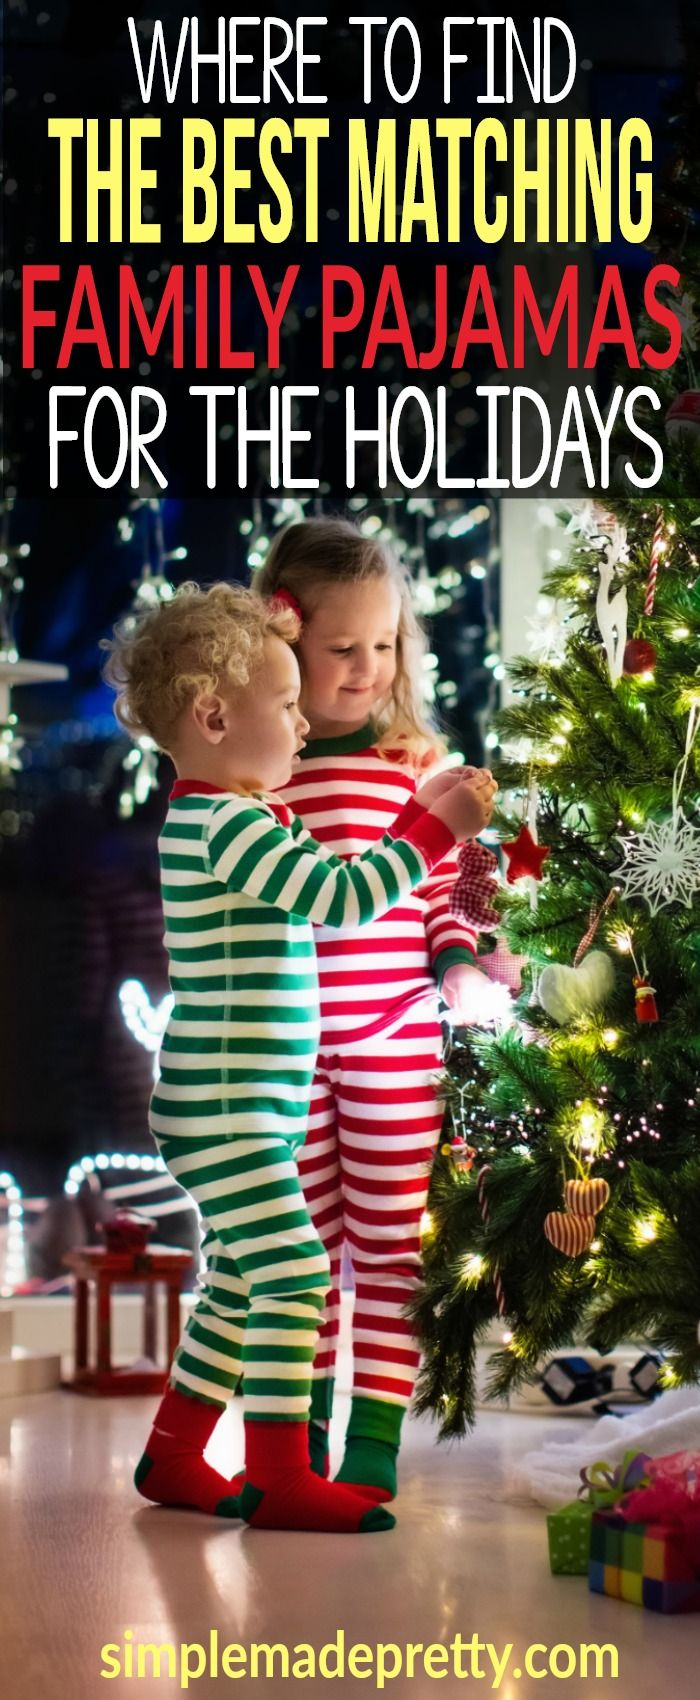 Our family has a Christmas tradition to wear family Christmas pajamas and we are always looking for new ways to incorporate them into our family Christmas photo ideas. I love all the matching family Christmas pajama ideas available in this post! Some of these holiday family pajamas are really funny and the women's pajama set is really comfy for winter.  via @SMPblog